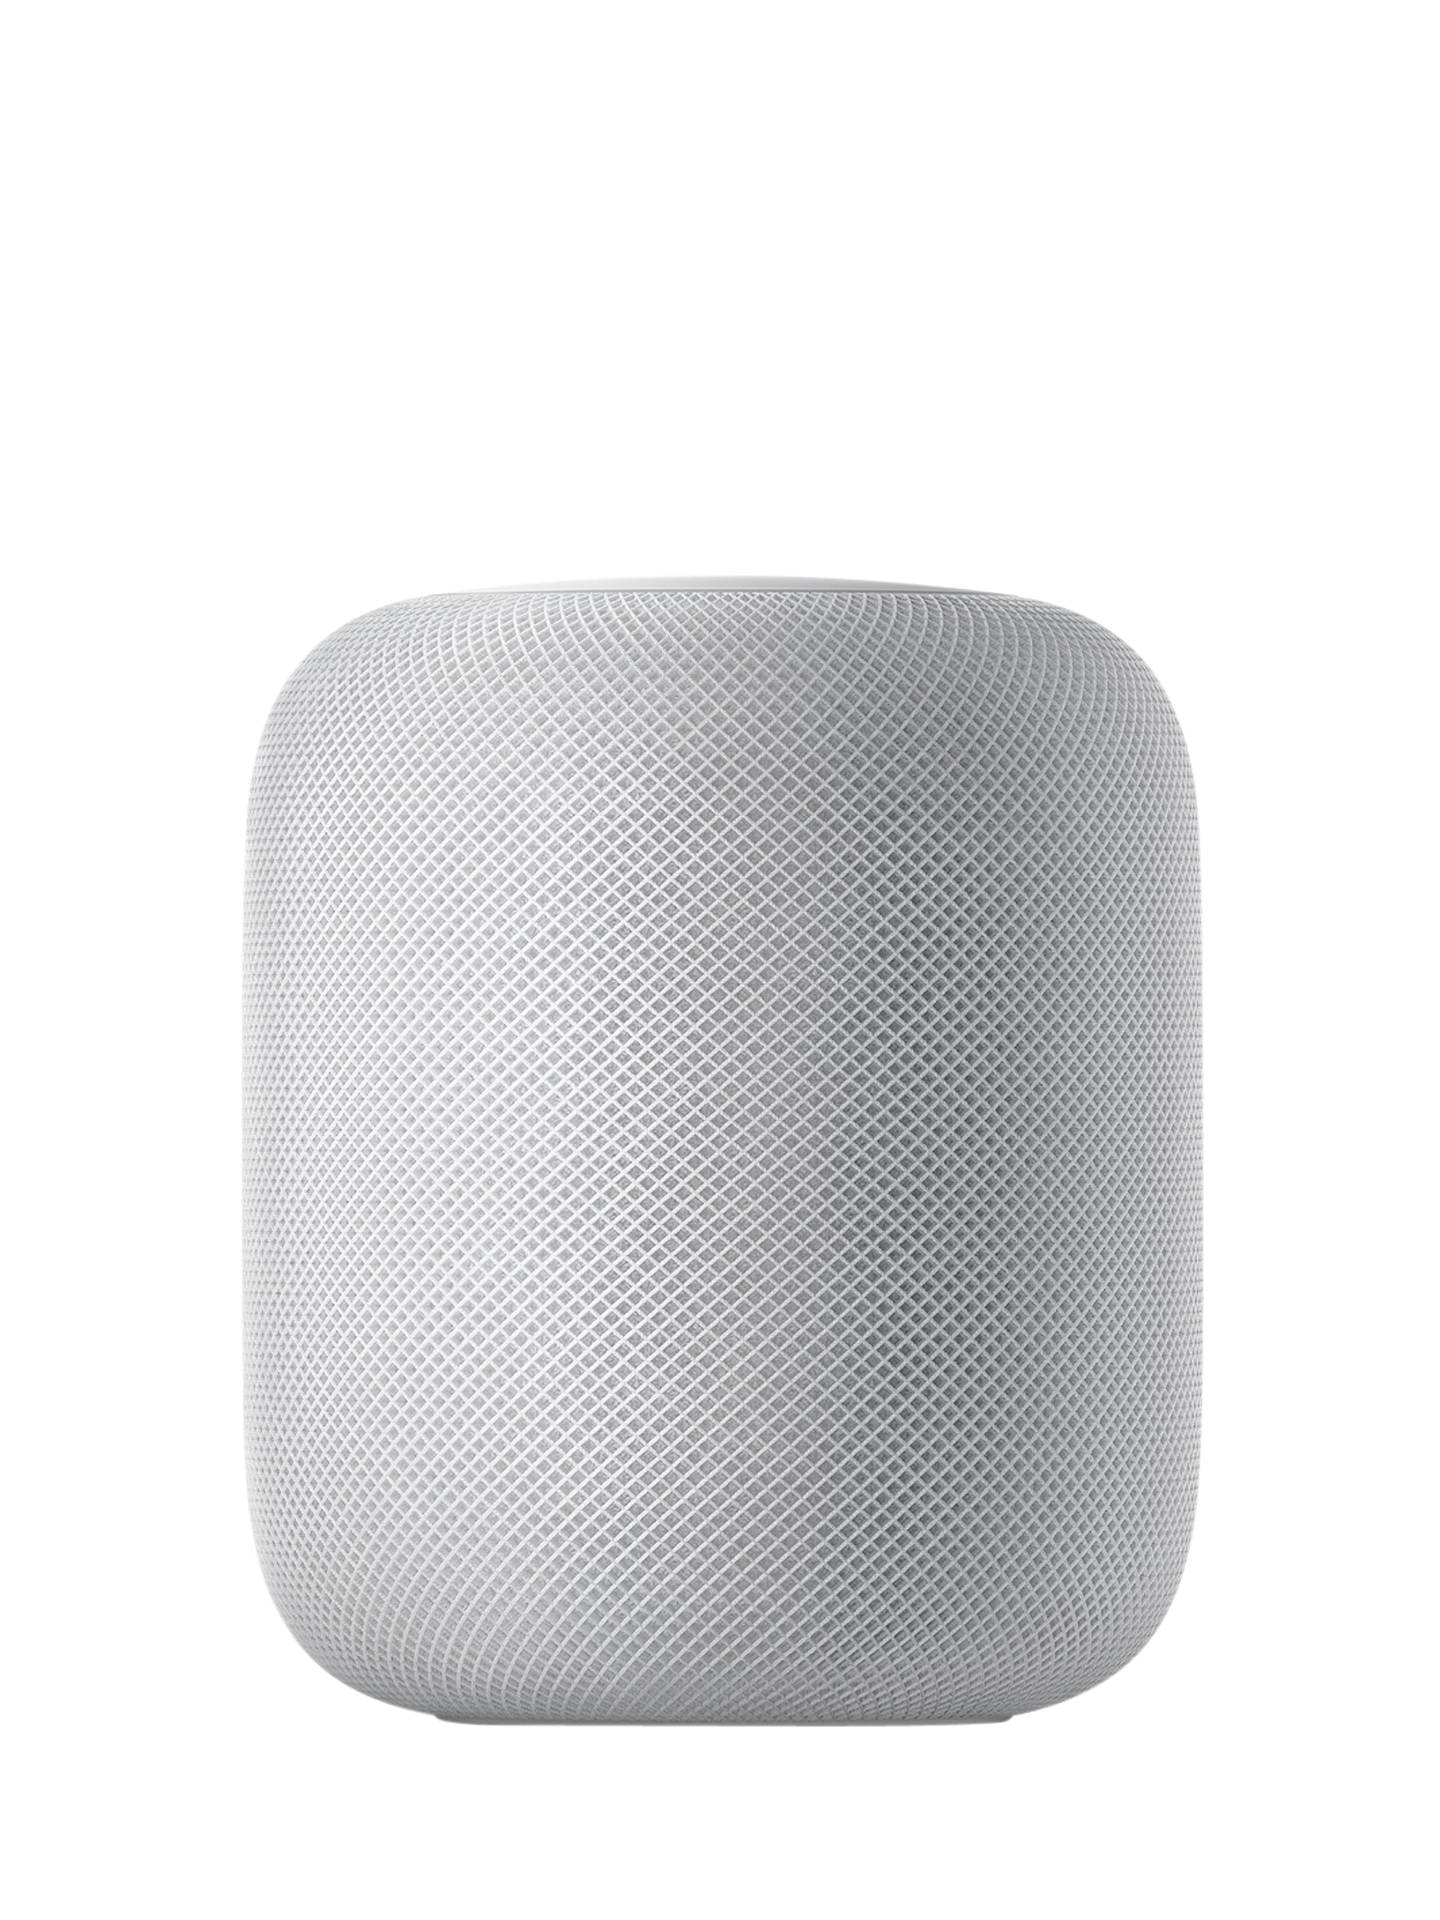 BuyApple HomePod, White Online at johnlewis.com